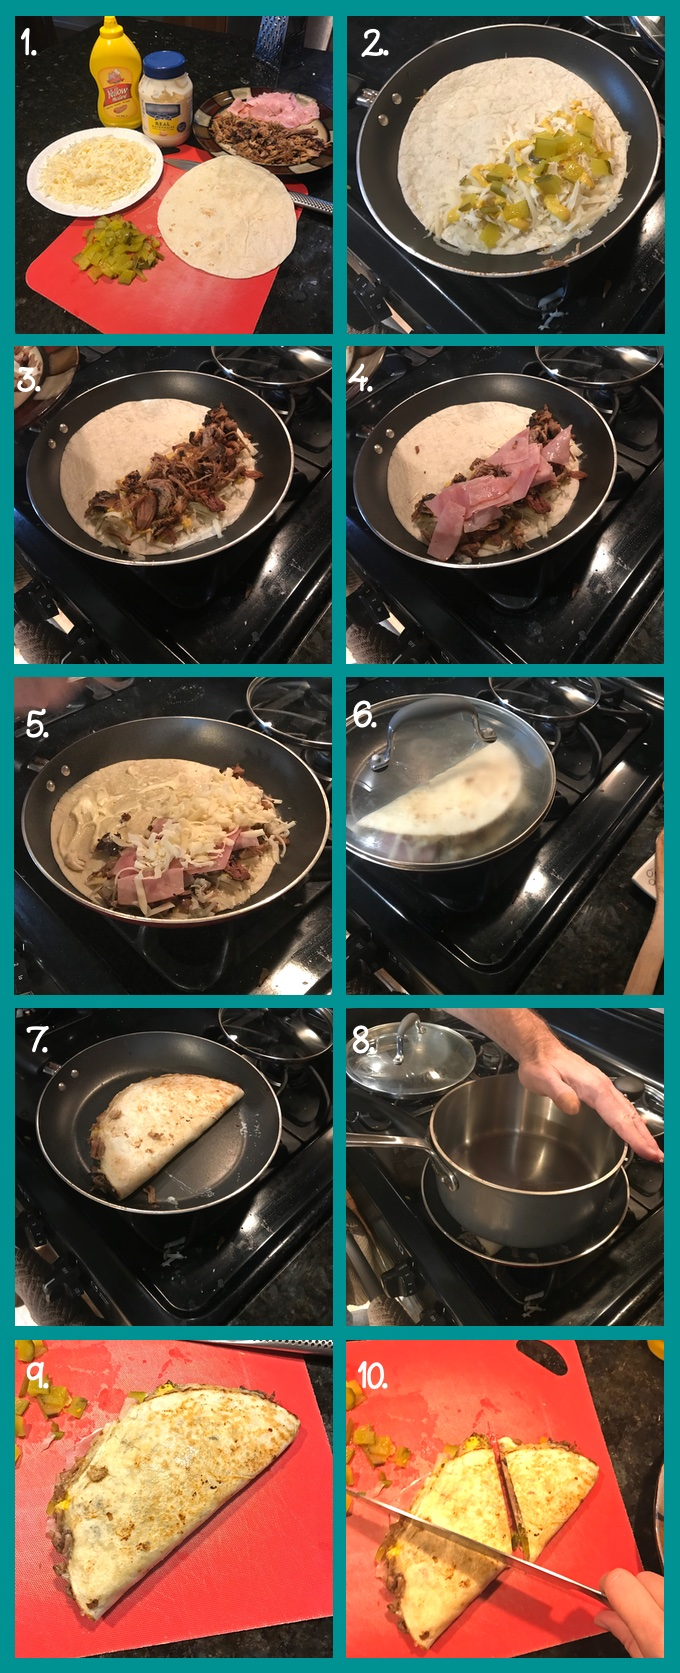 Preparing Cubano Quesadillas. 1. The ingredients (mustard, mayonnaise, pulled pork, ham, chopped dill pickle, shredded Swiss cheese, burrito-size [large] flour tortilla); 2. Set a flour tortilla into a non-stick skillet over medium-low heat. Load one half with cheese, mustard, and pickles. 3. Add a layer of pulled pork. 4. Add a layer of ham. 5. Sprinkle on more cheese. Smear the other half of the tortilla with mayonnaise. 6. Fold the tortilla over the filling and lid the skillet. Let cook 2–3 minutes, until the cheese is beginning to melt and the bottom half of the tortilla is turning golden-brown. 7. Flip the quesadilla with a silicone spatula. 8. Press down on the quesadilla with a saucepan to flatten. 9. Set the finished quesadilla on a cutting board. 10. Cut the quesadilla into 3 approximately equal wedges.